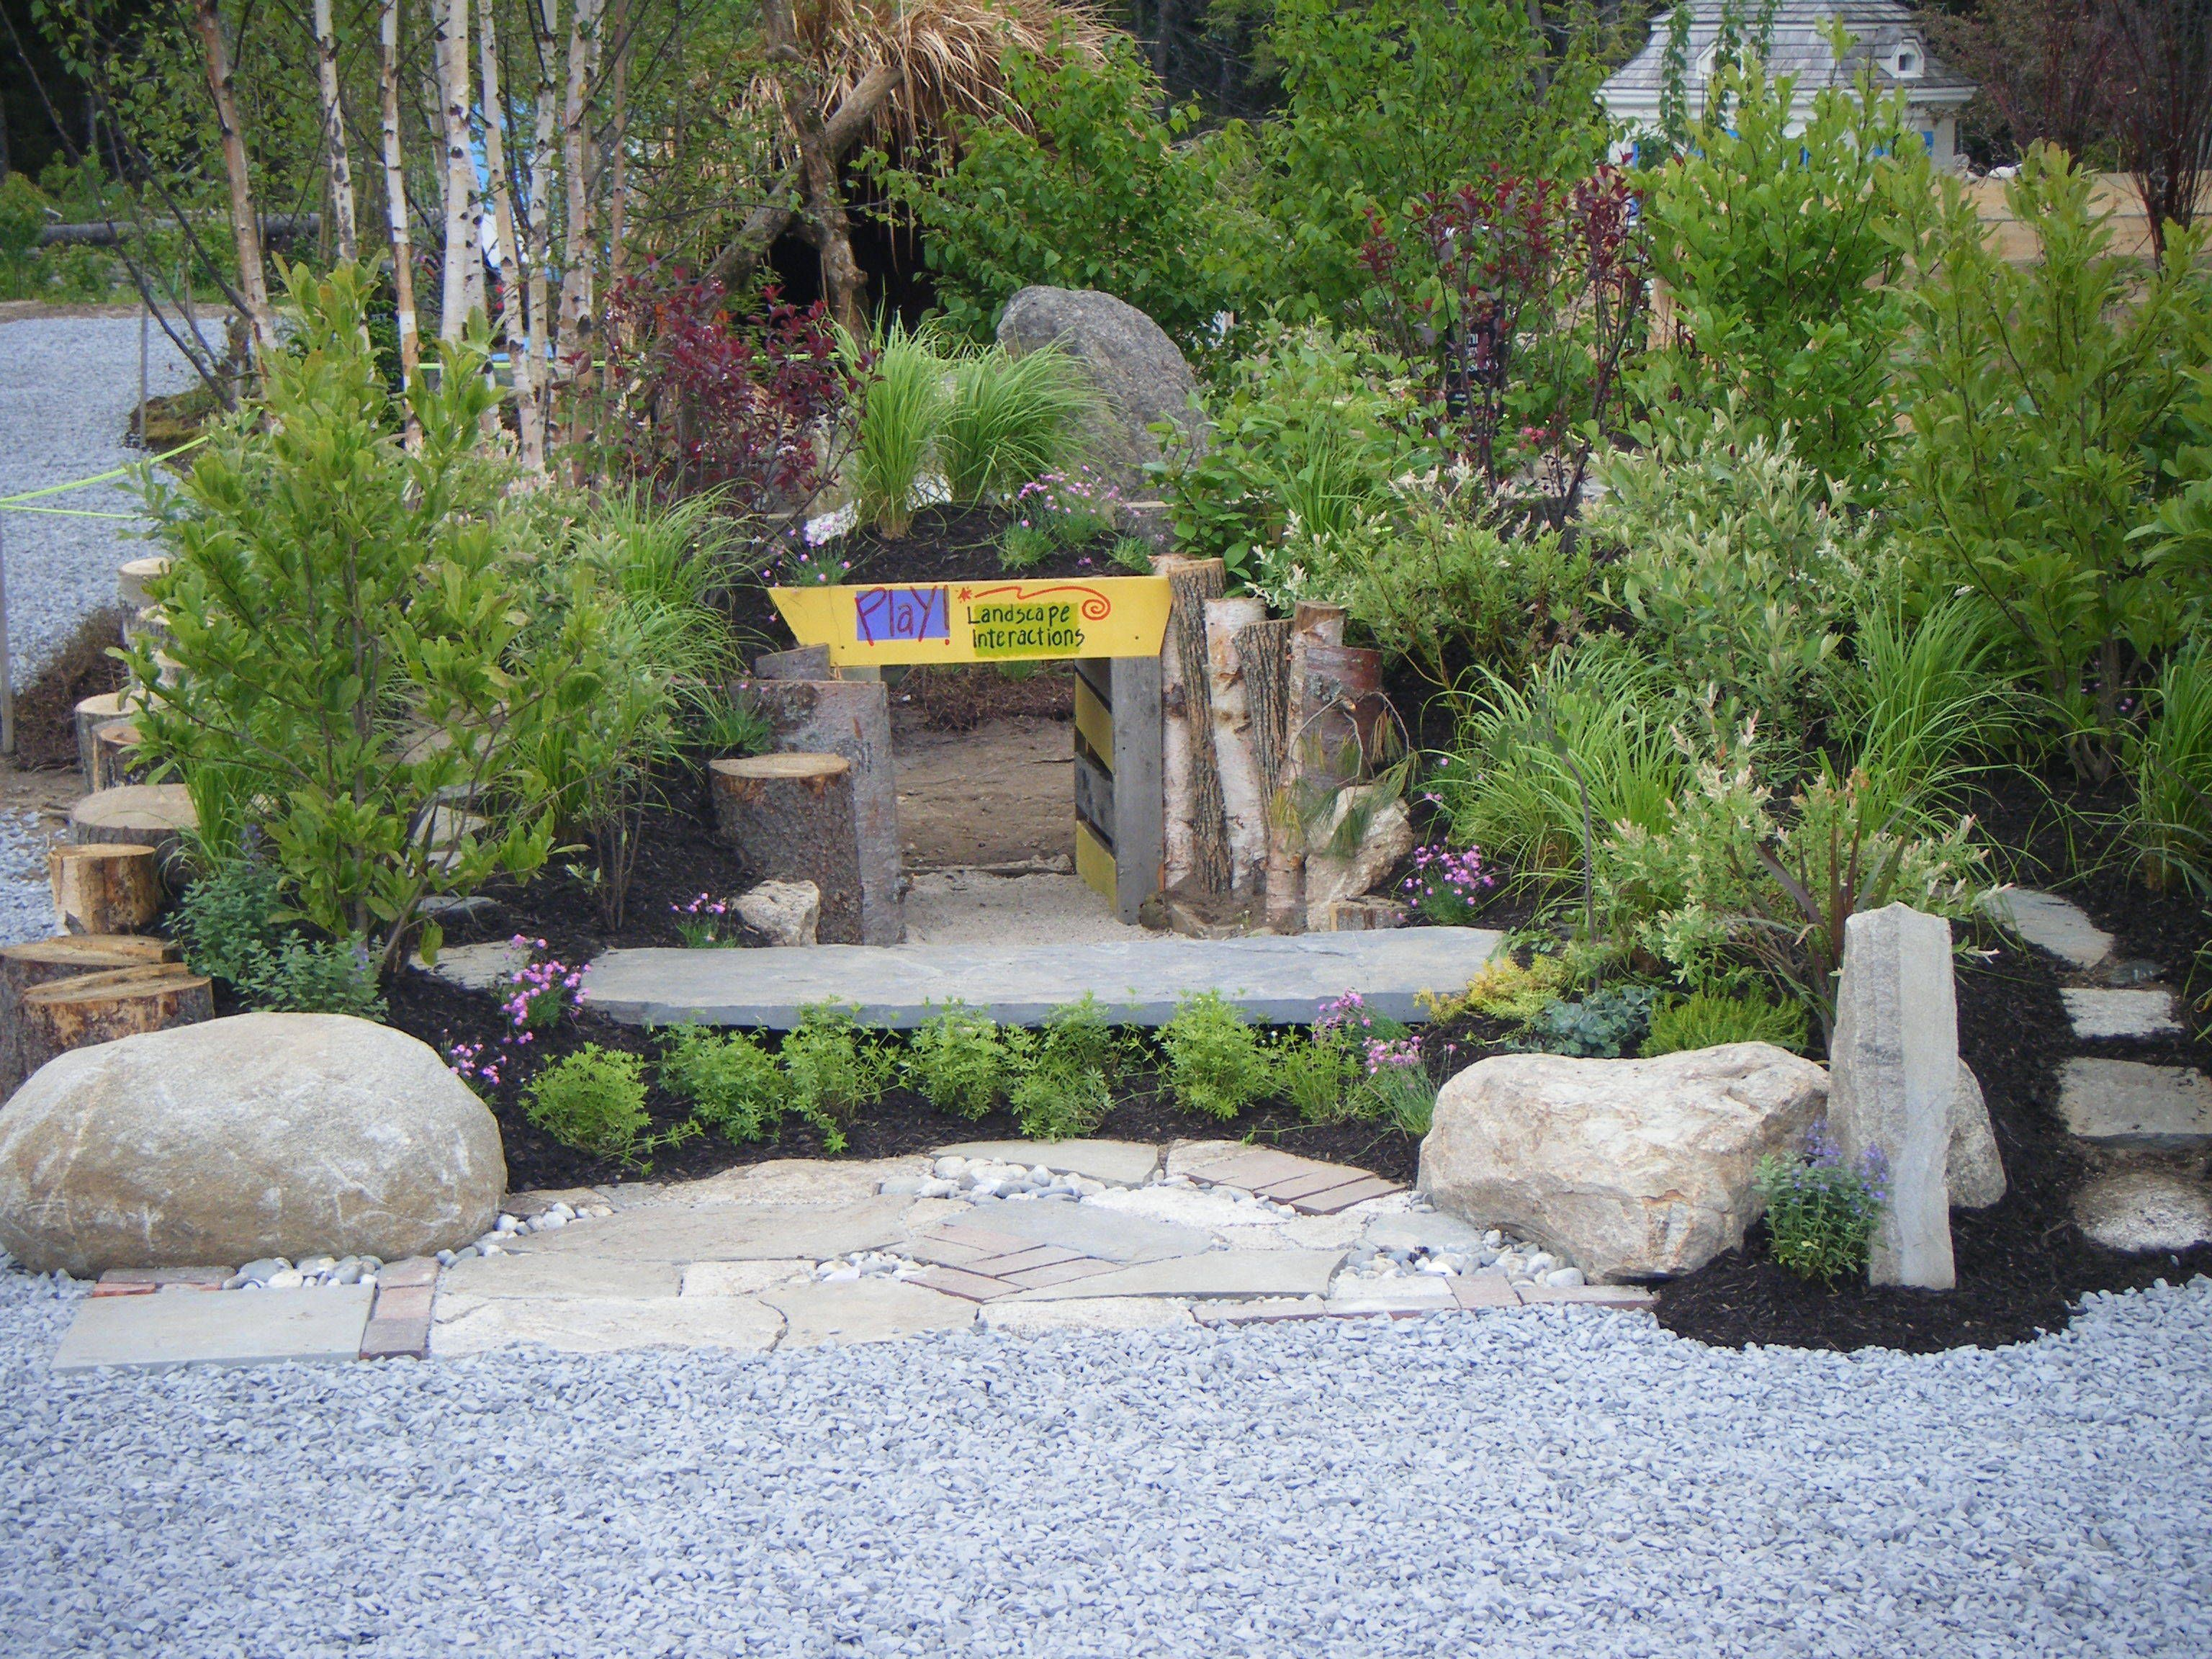 Awesome Hardscape Ideas For Children Begin With Making Your Landscaping Project An  Adventure For Your Kids Use Hardscape Materials And Designs That Will  Create An